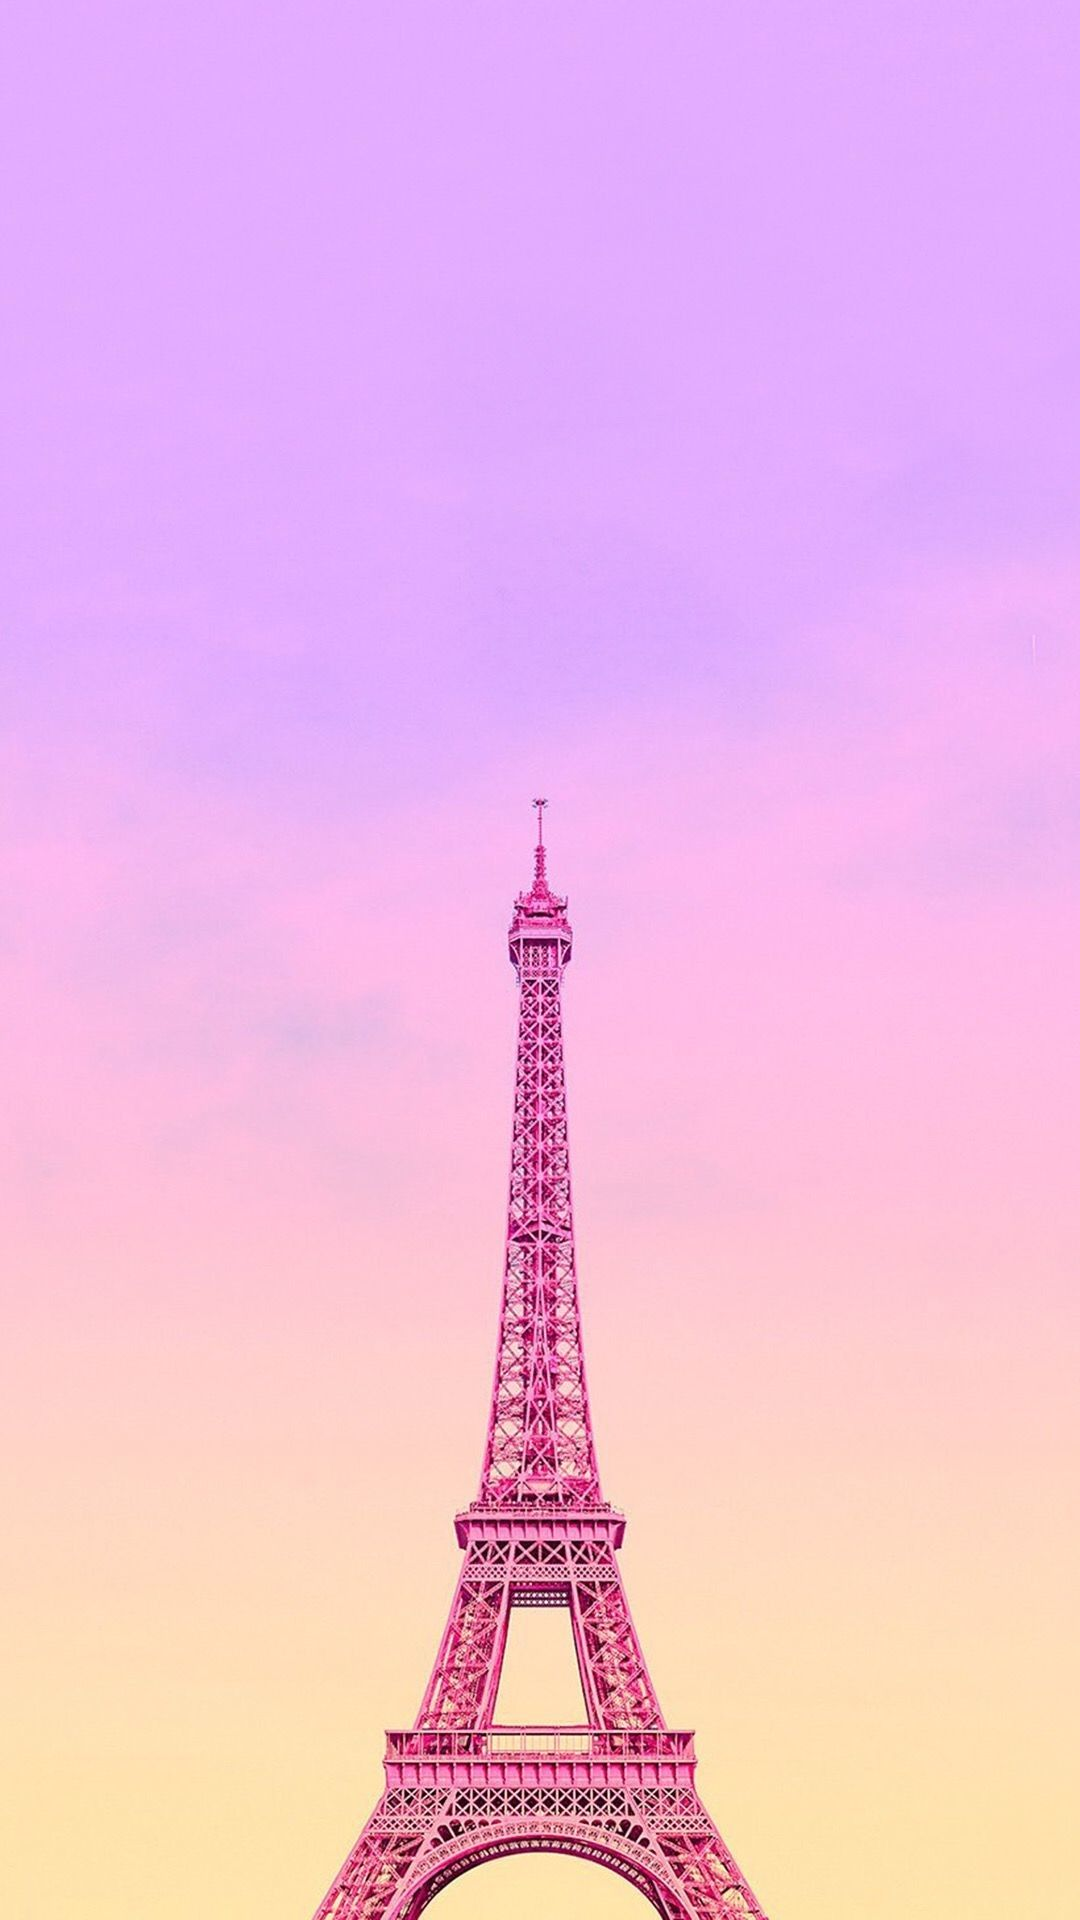 Girly Paris Wallpaper : girly, paris, wallpaper, Paris, IPhone, Wallpapers, Backgrounds, WallpaperAccess